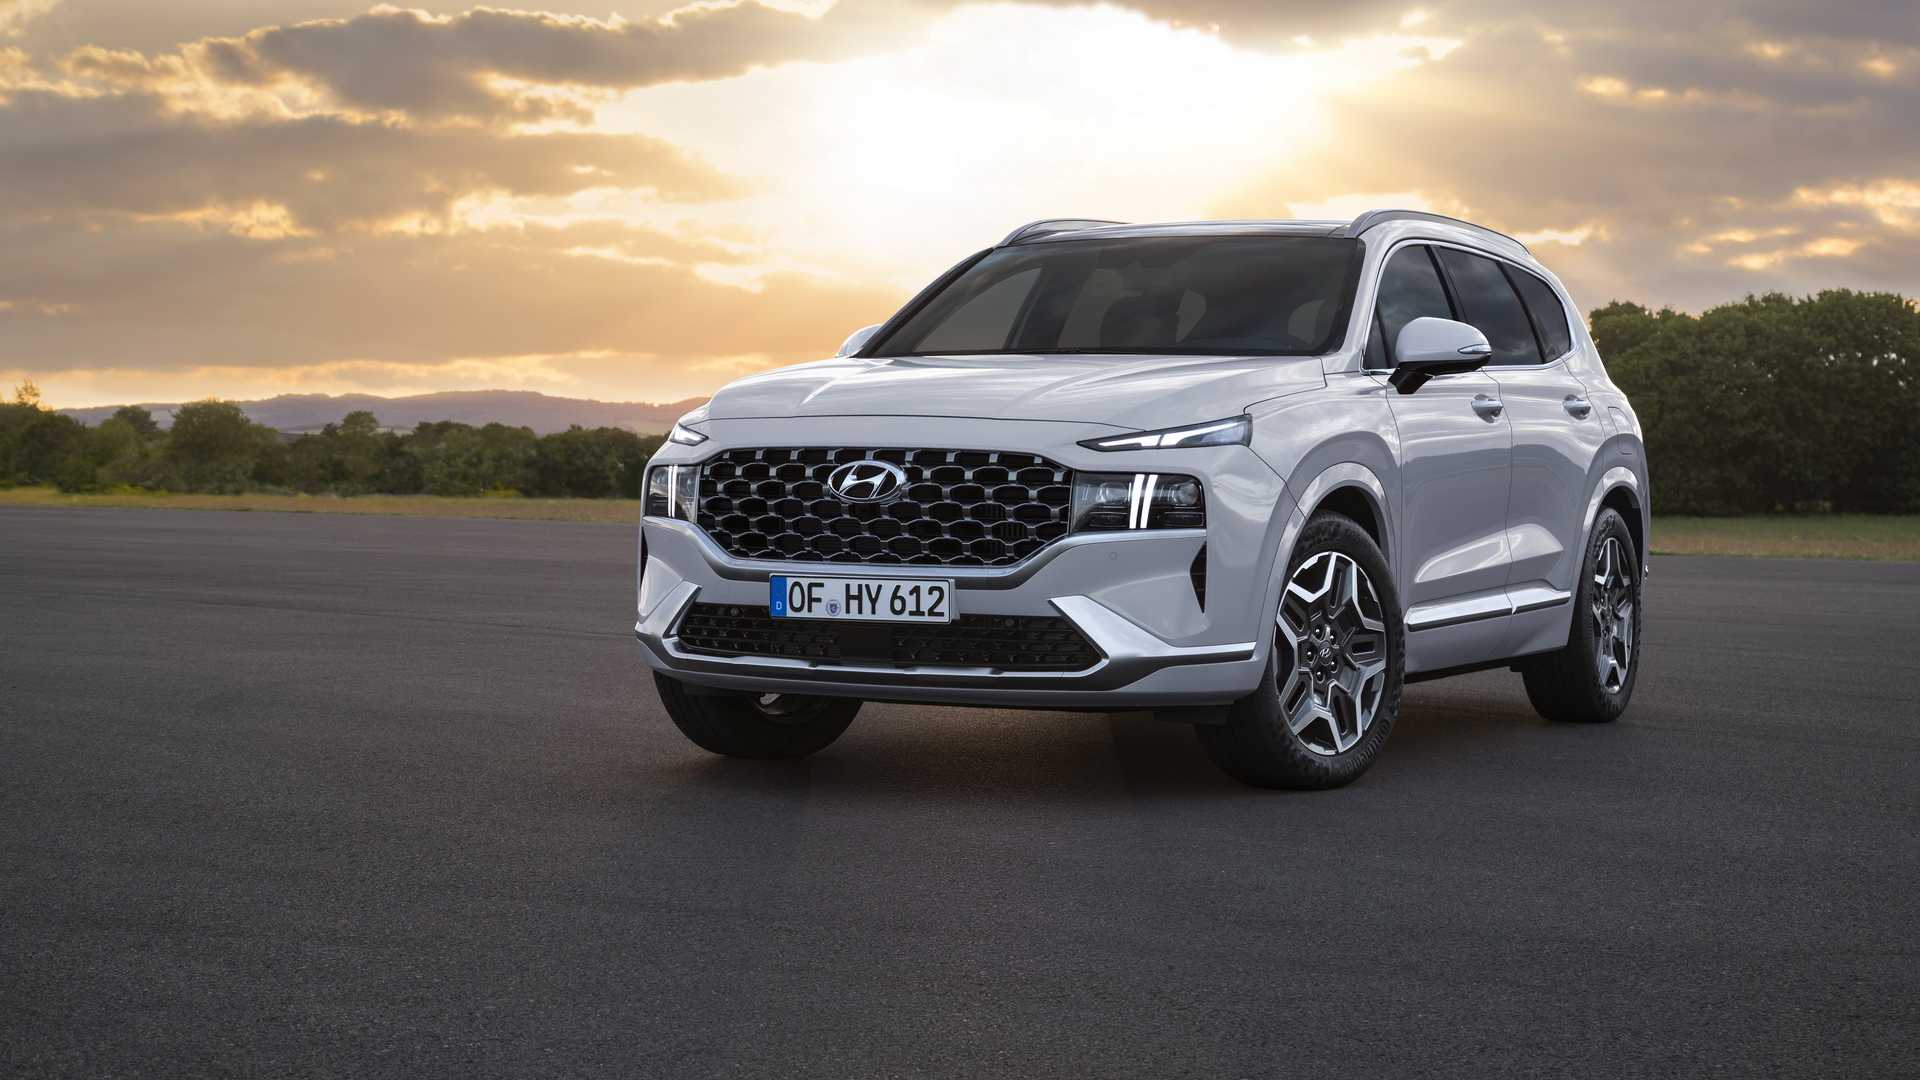 Hyundai's latest seven-seat Sante Fe due at year end breaks cover